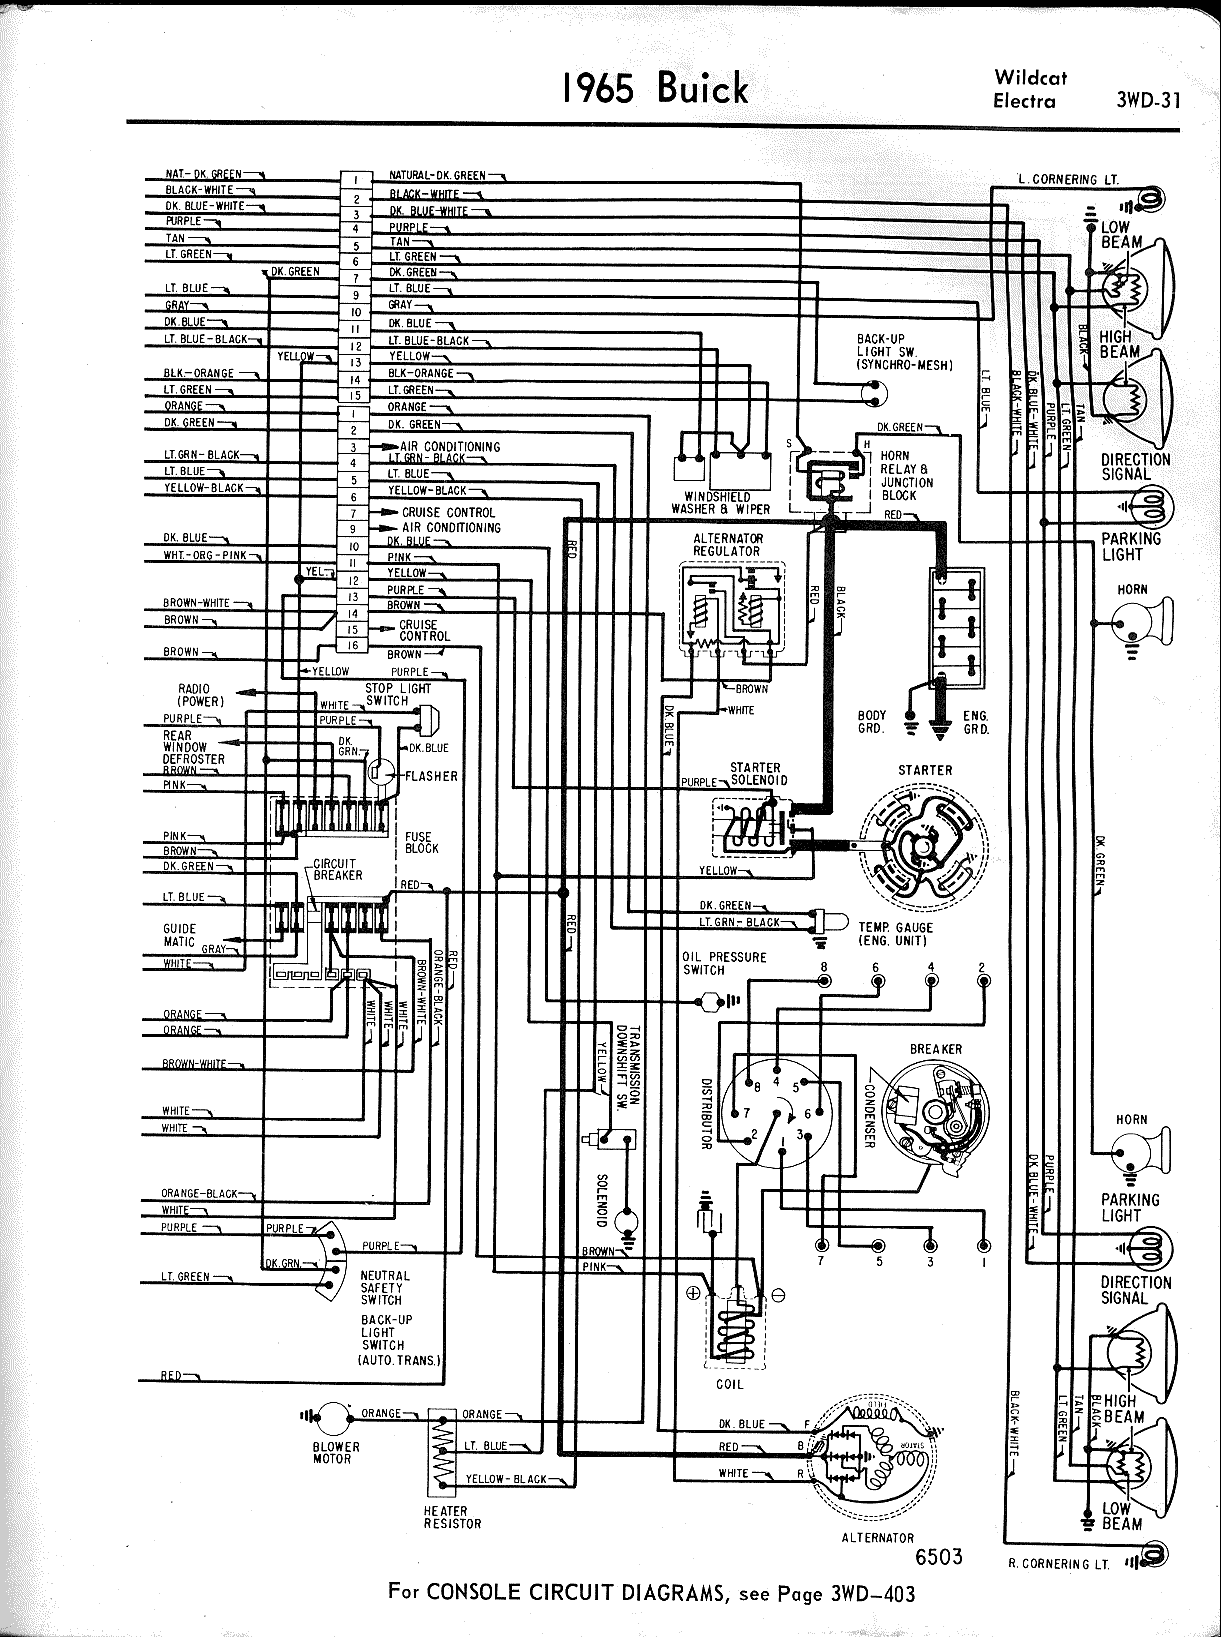 67 buick wiring diagram 67 wiring diagrams online buick wiring diagrams 1957 1965